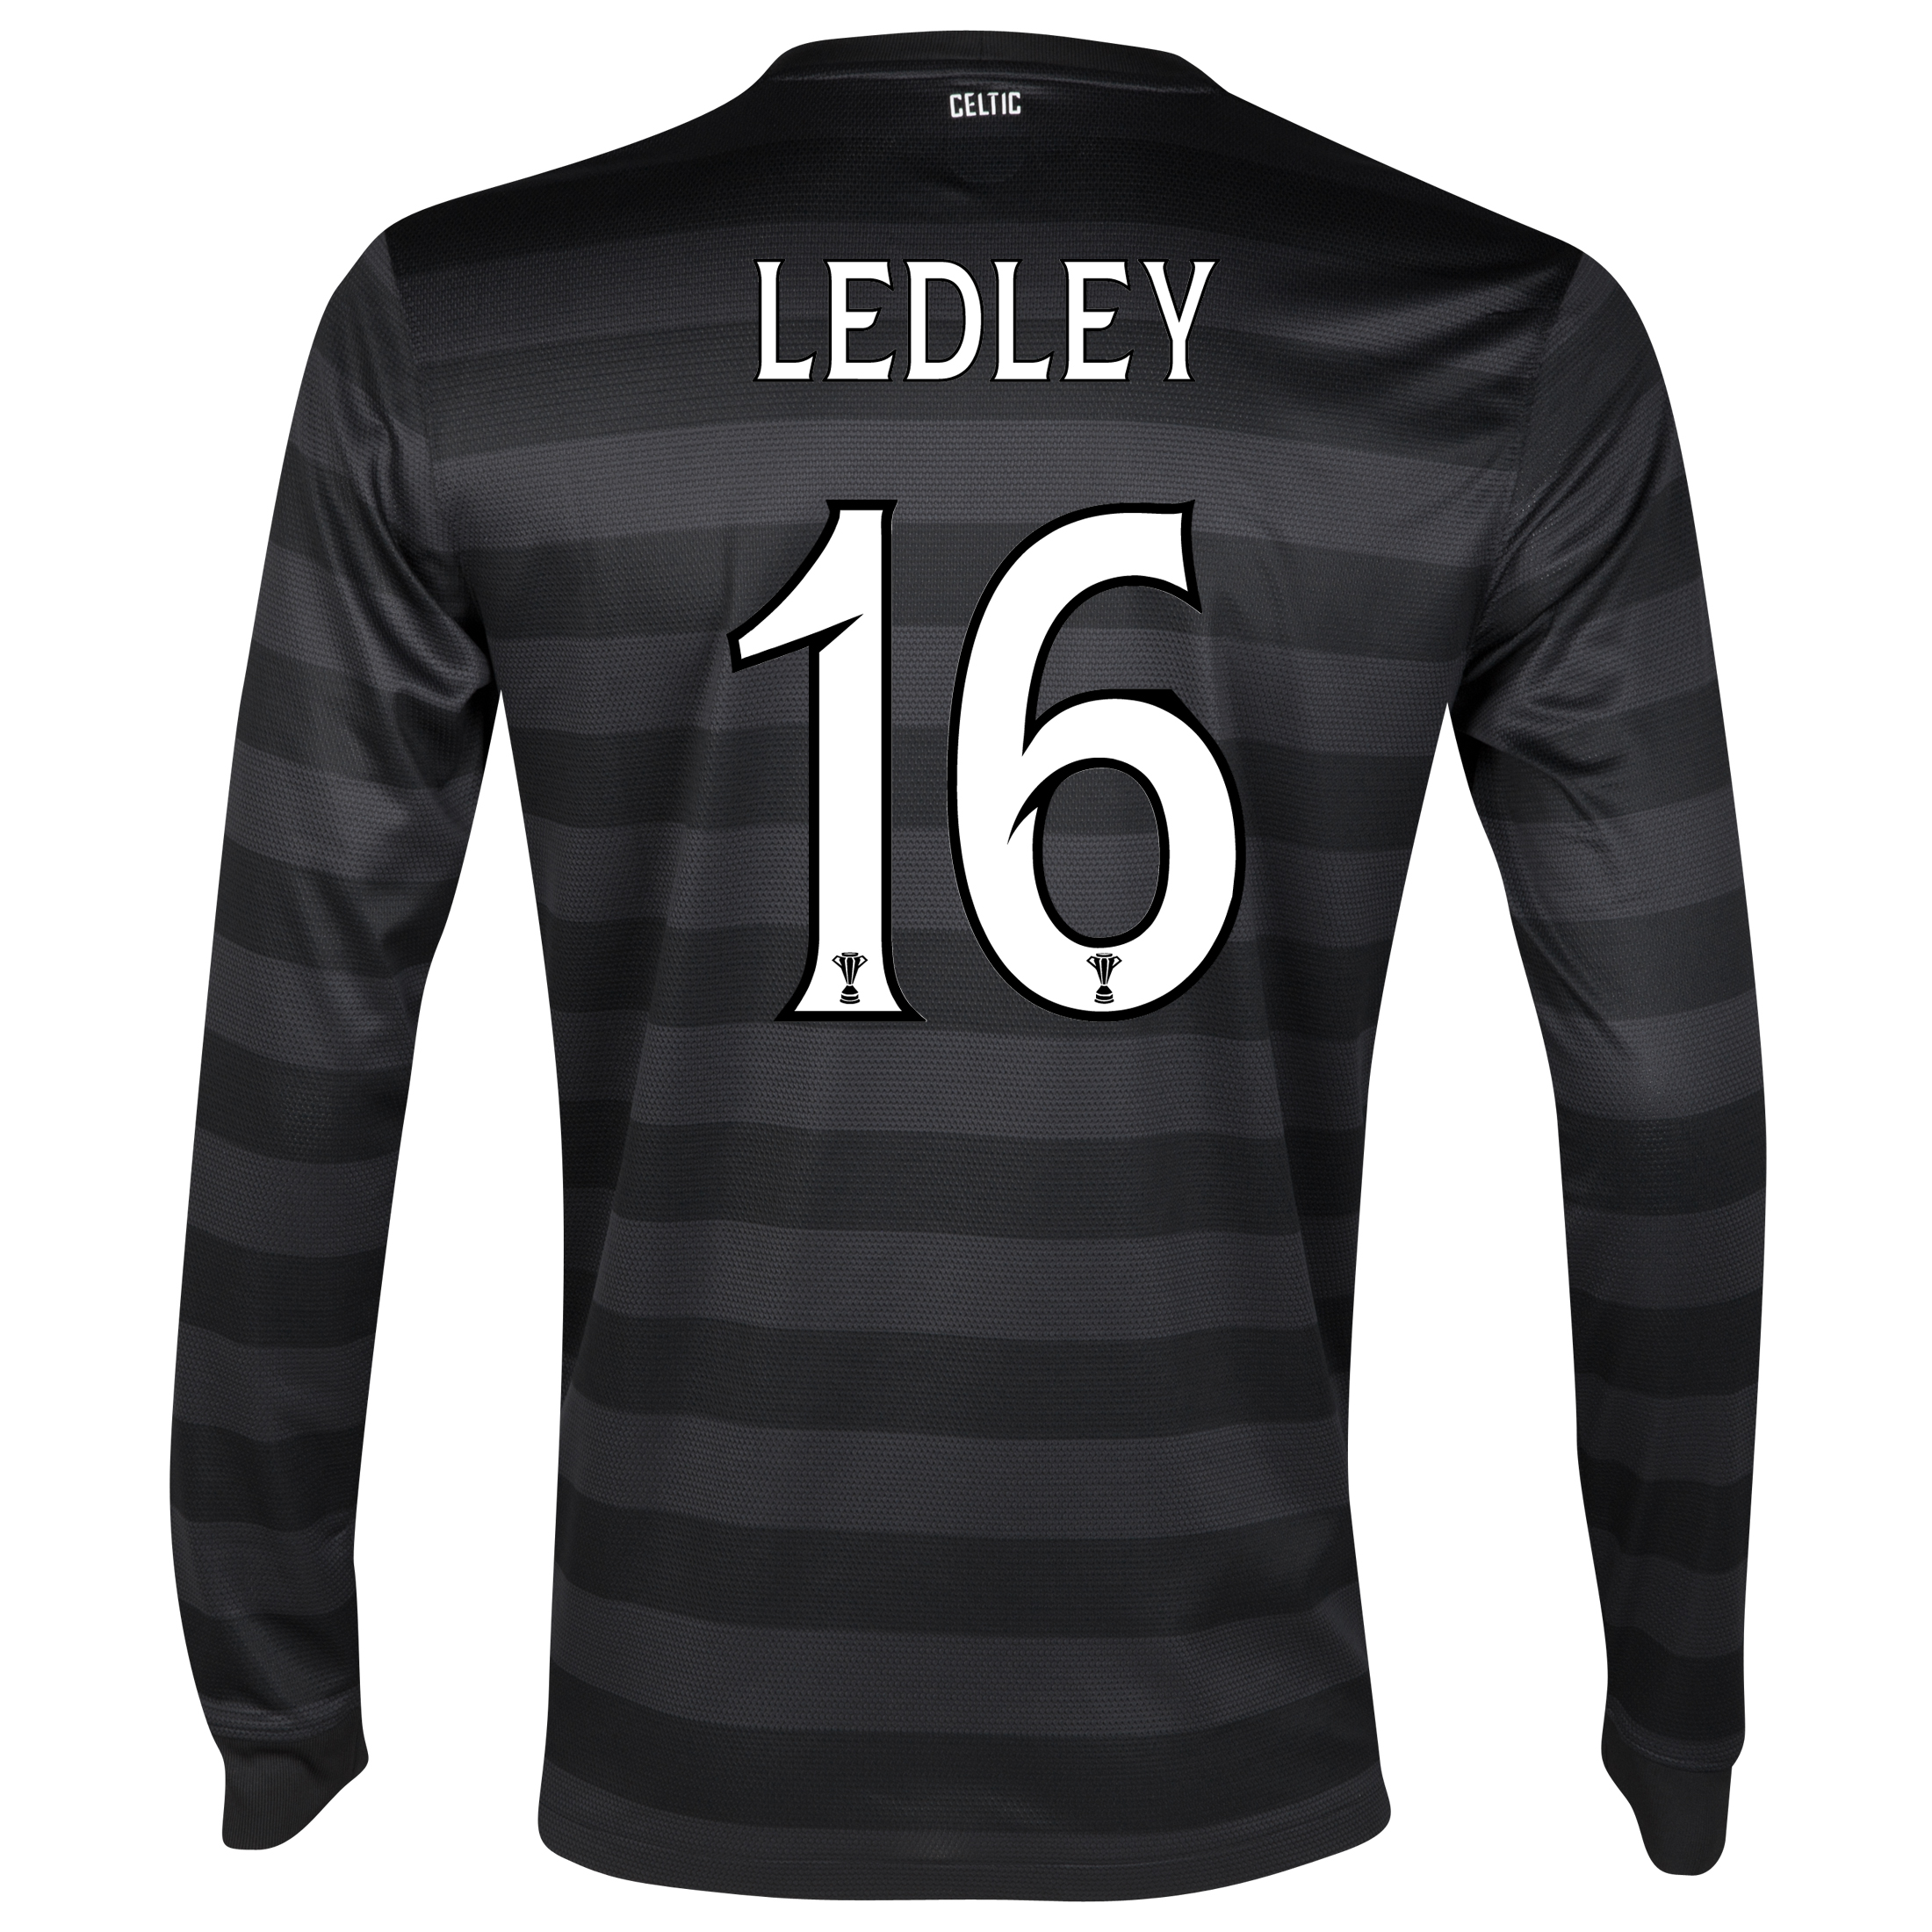 Celtic Away Shirt 2012/13 - Long Sleeved no sponsor with Ledley 16 printing